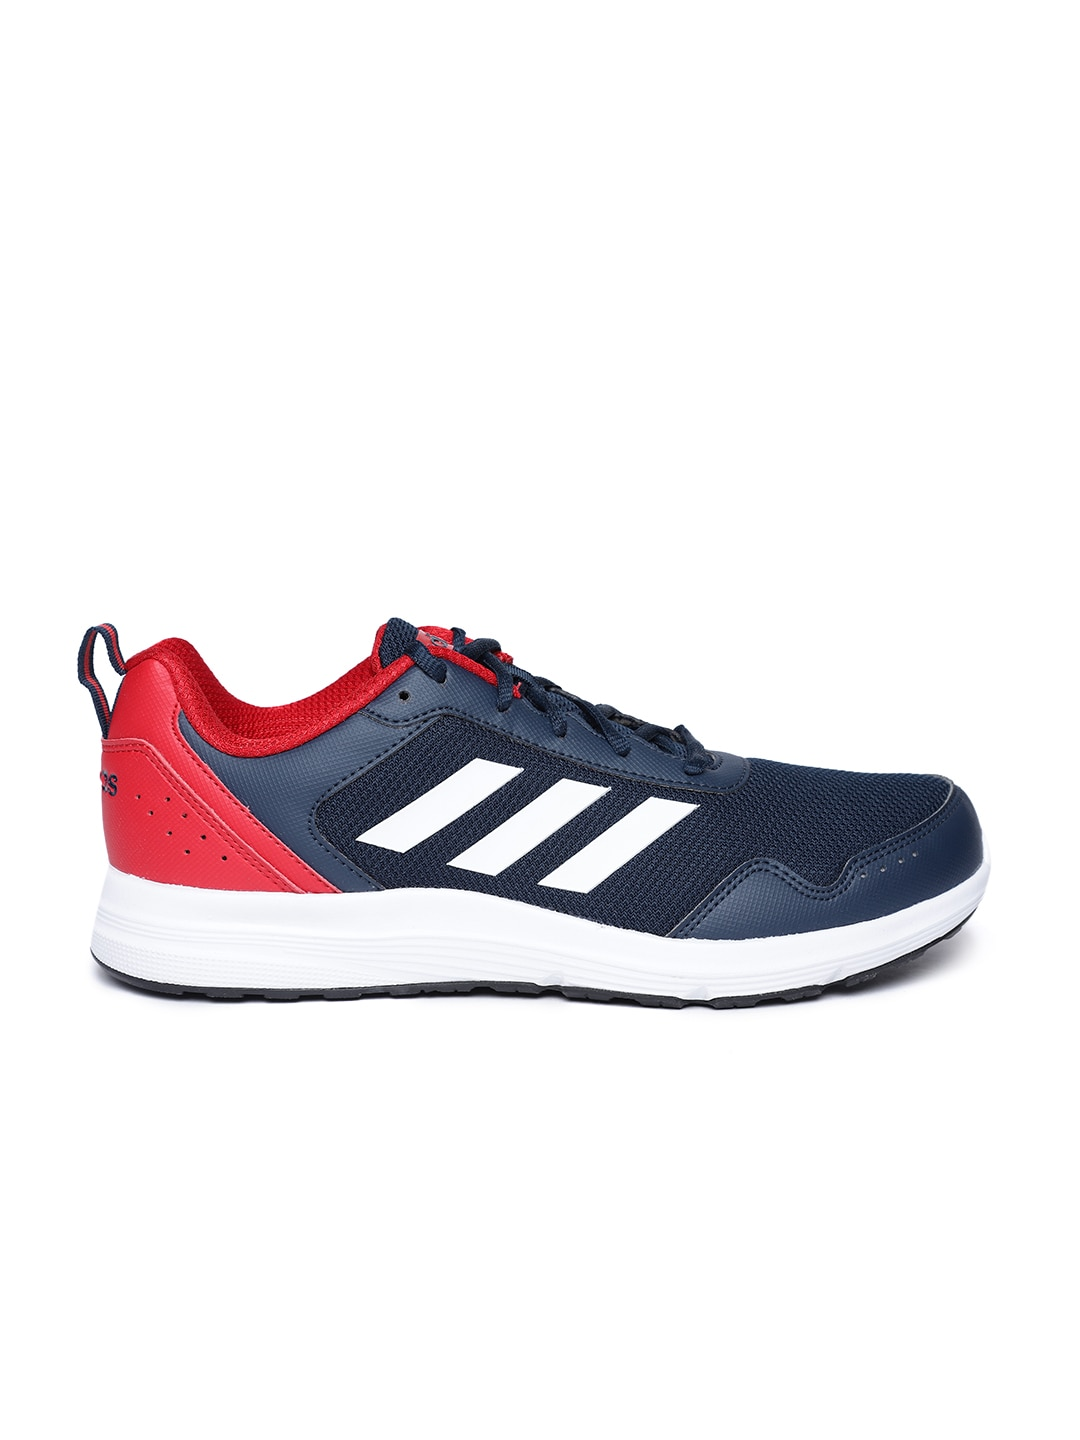 aa34a6110 Adidas Shoes - Buy Adidas Shoes for Men   Women Online - Myntra